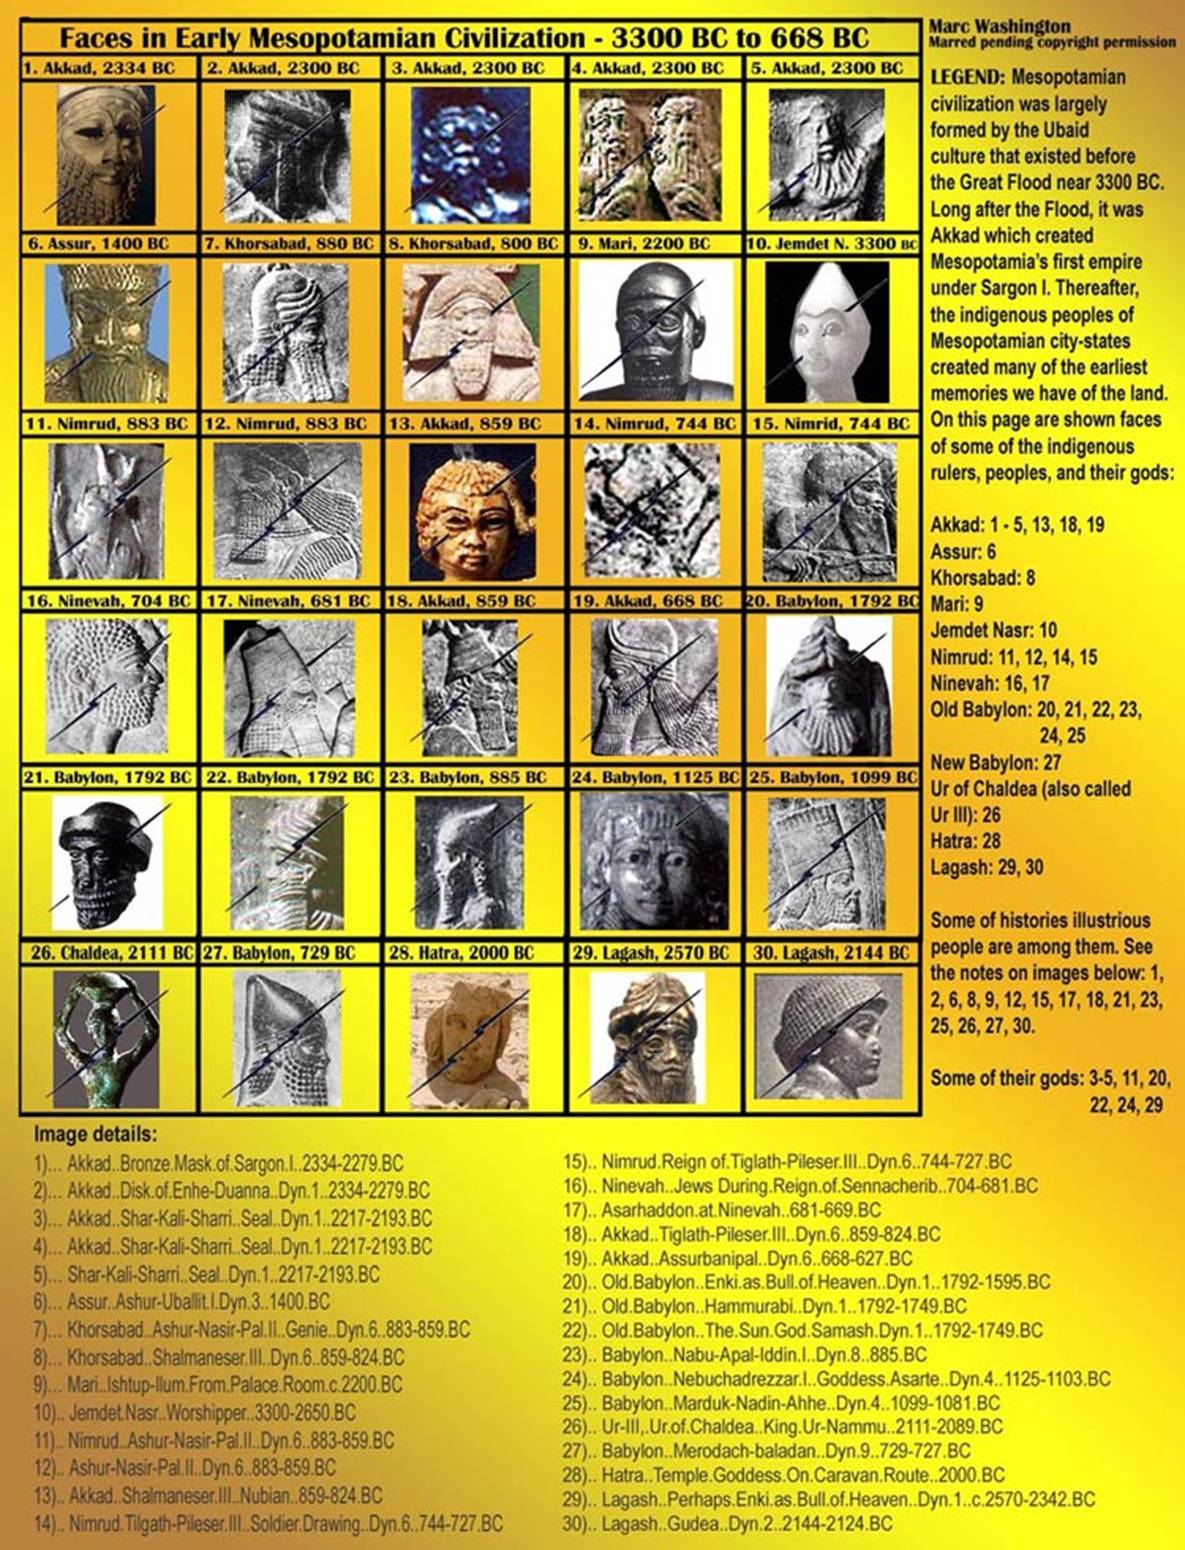 the ancient mesopotamian We would like to show you a description here but the site won't allow us.